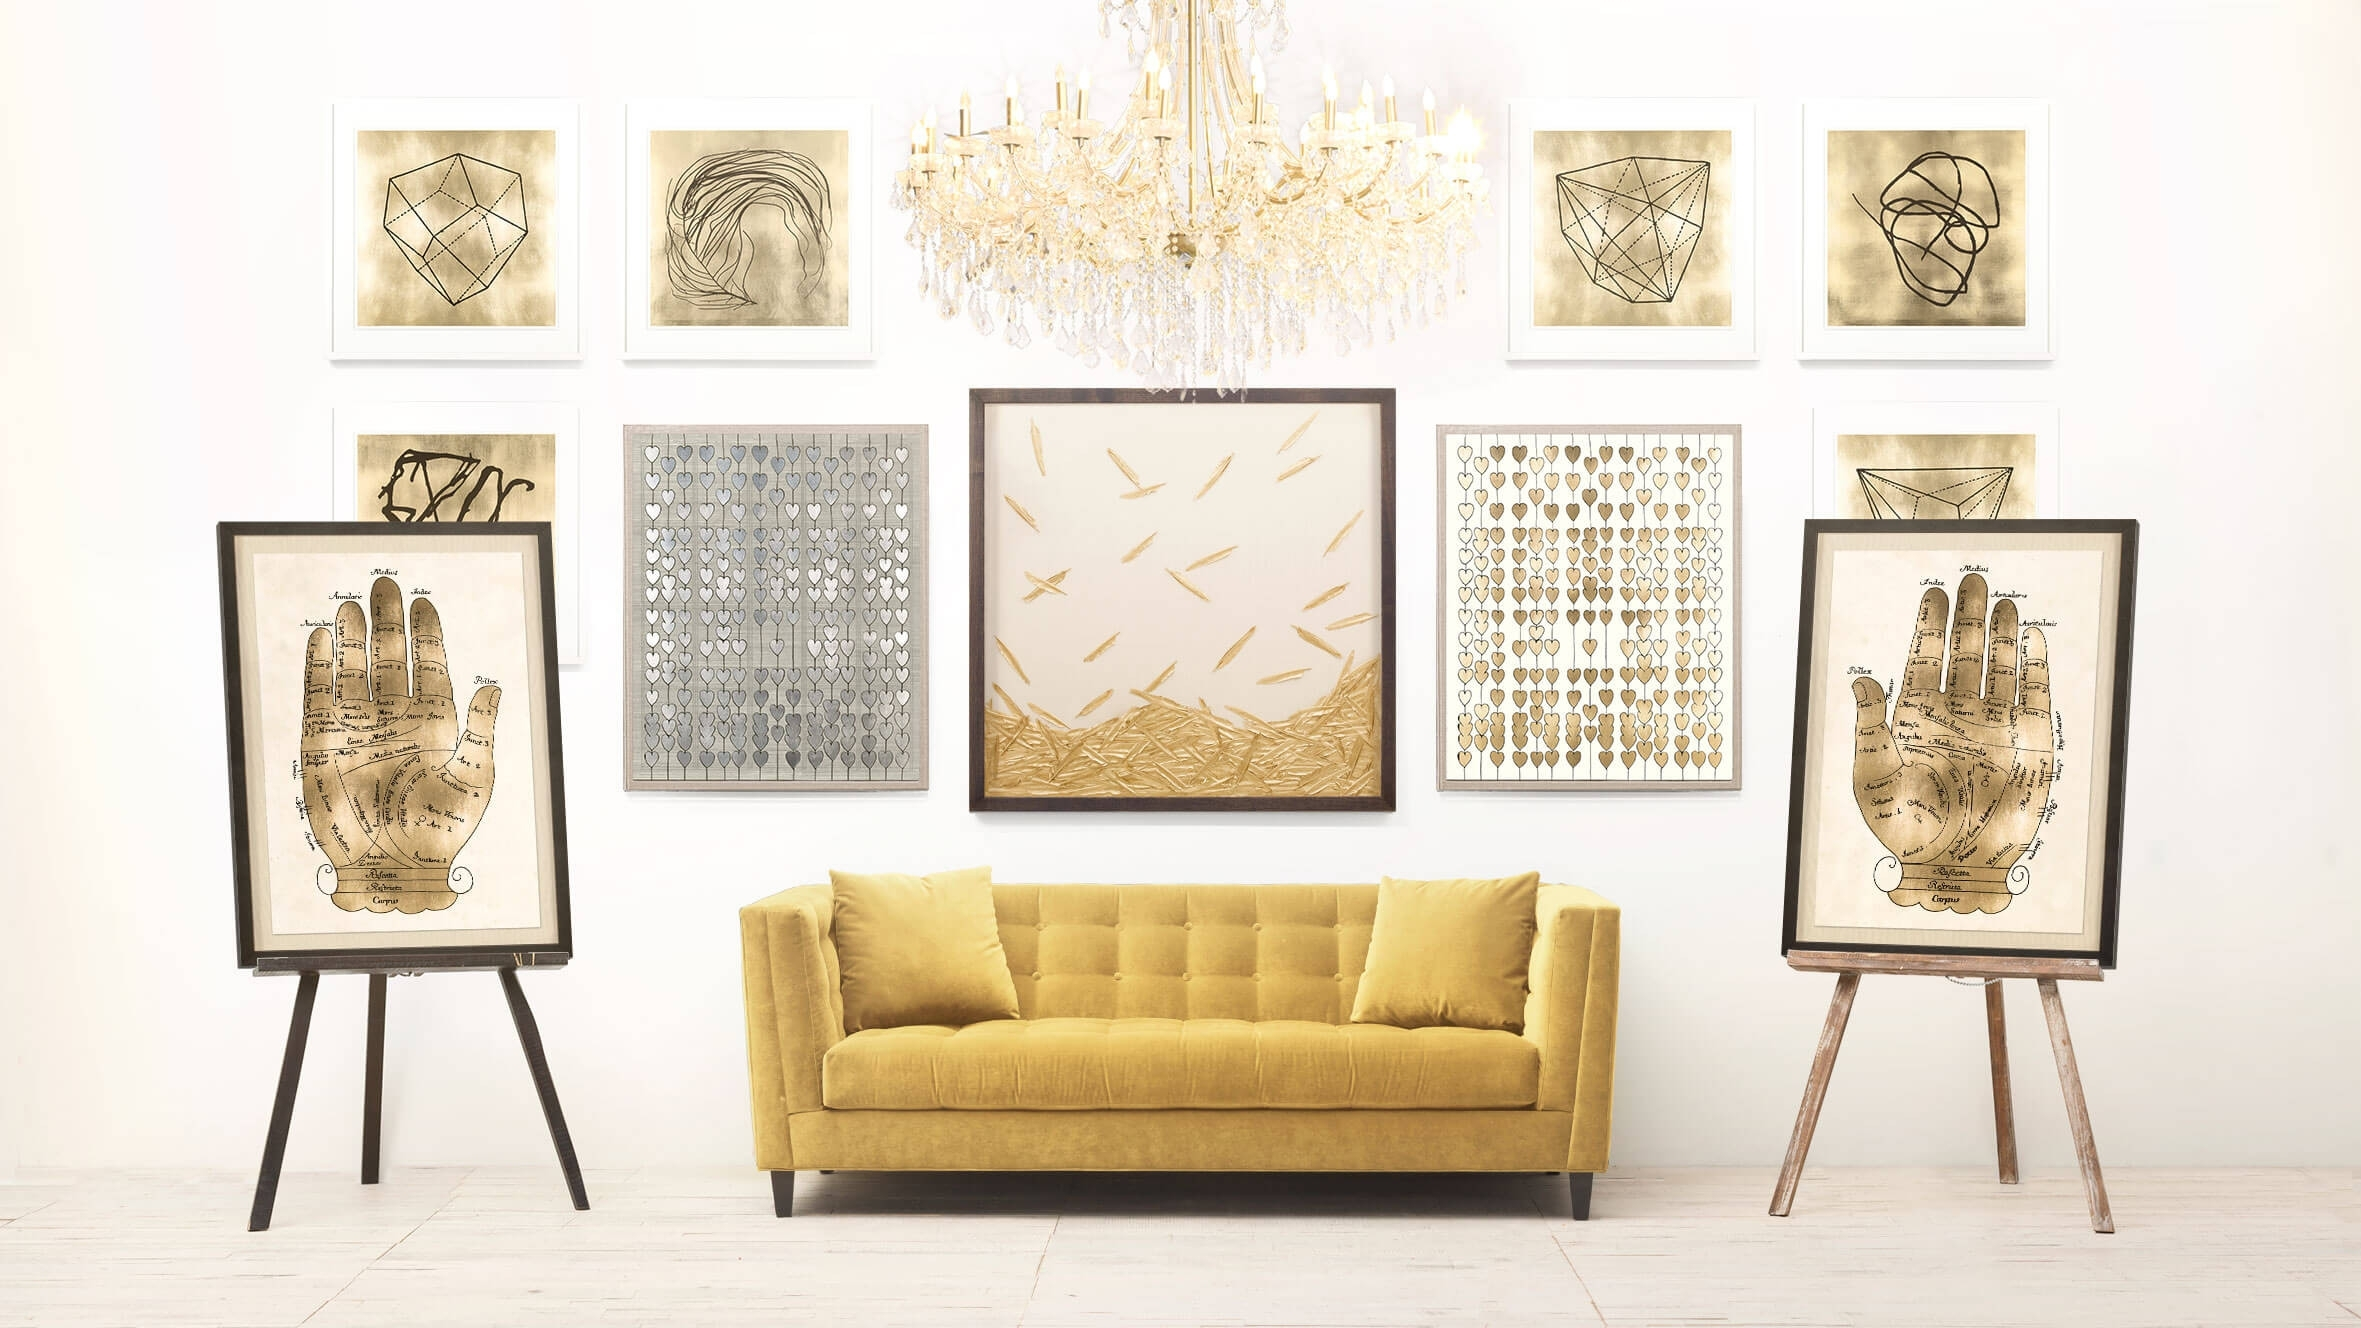 Luxury White And Gold Wall Art - Kunuzmetals within Latest Gold Wall Art